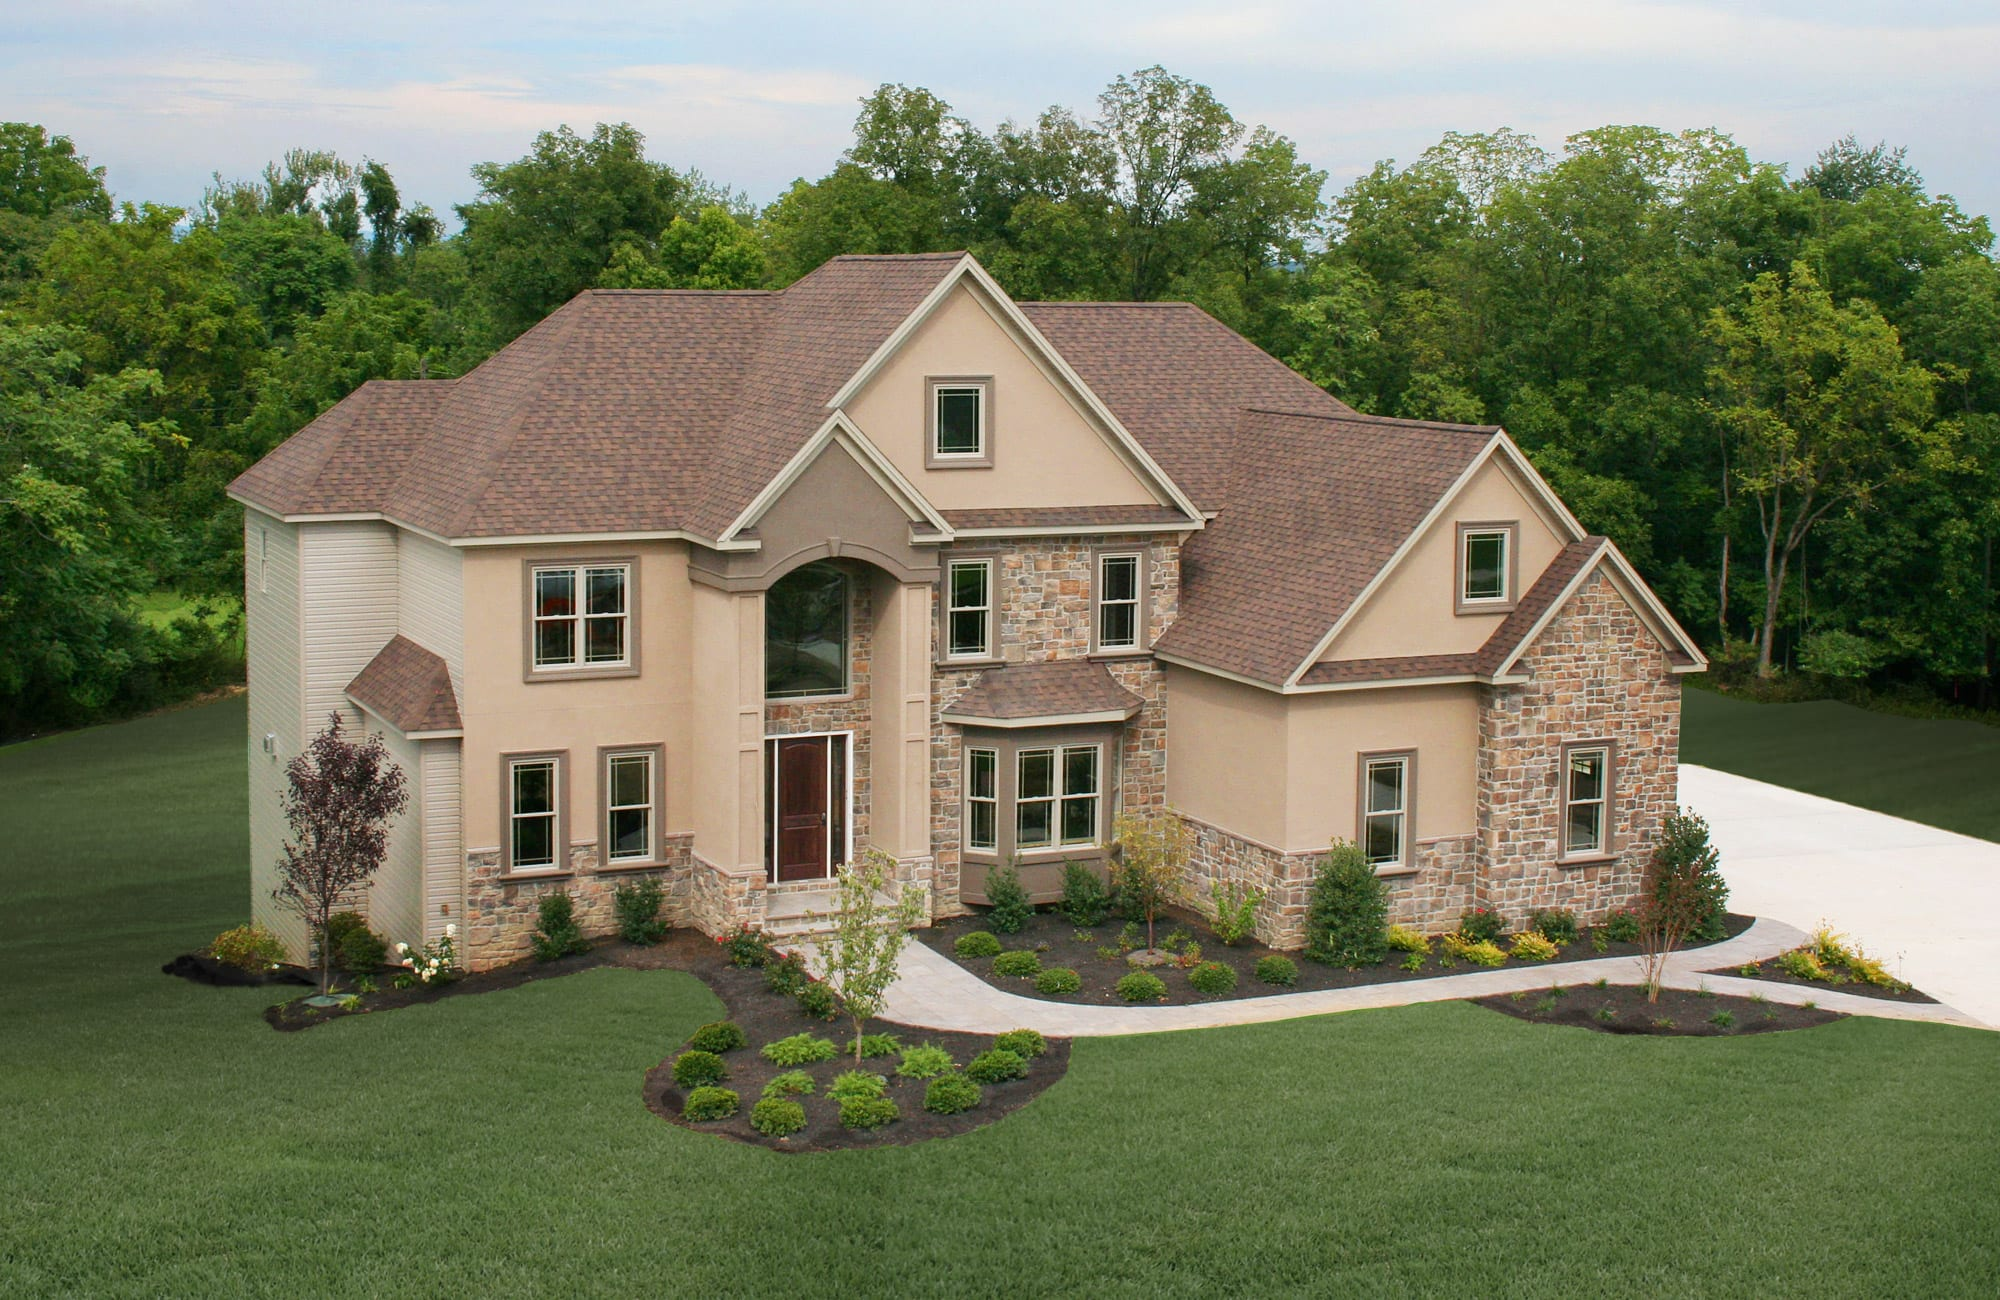 Superior Home Builders Central Pa #2: Custom Home Builder U0026 Remodeler In Harrisburg, PA